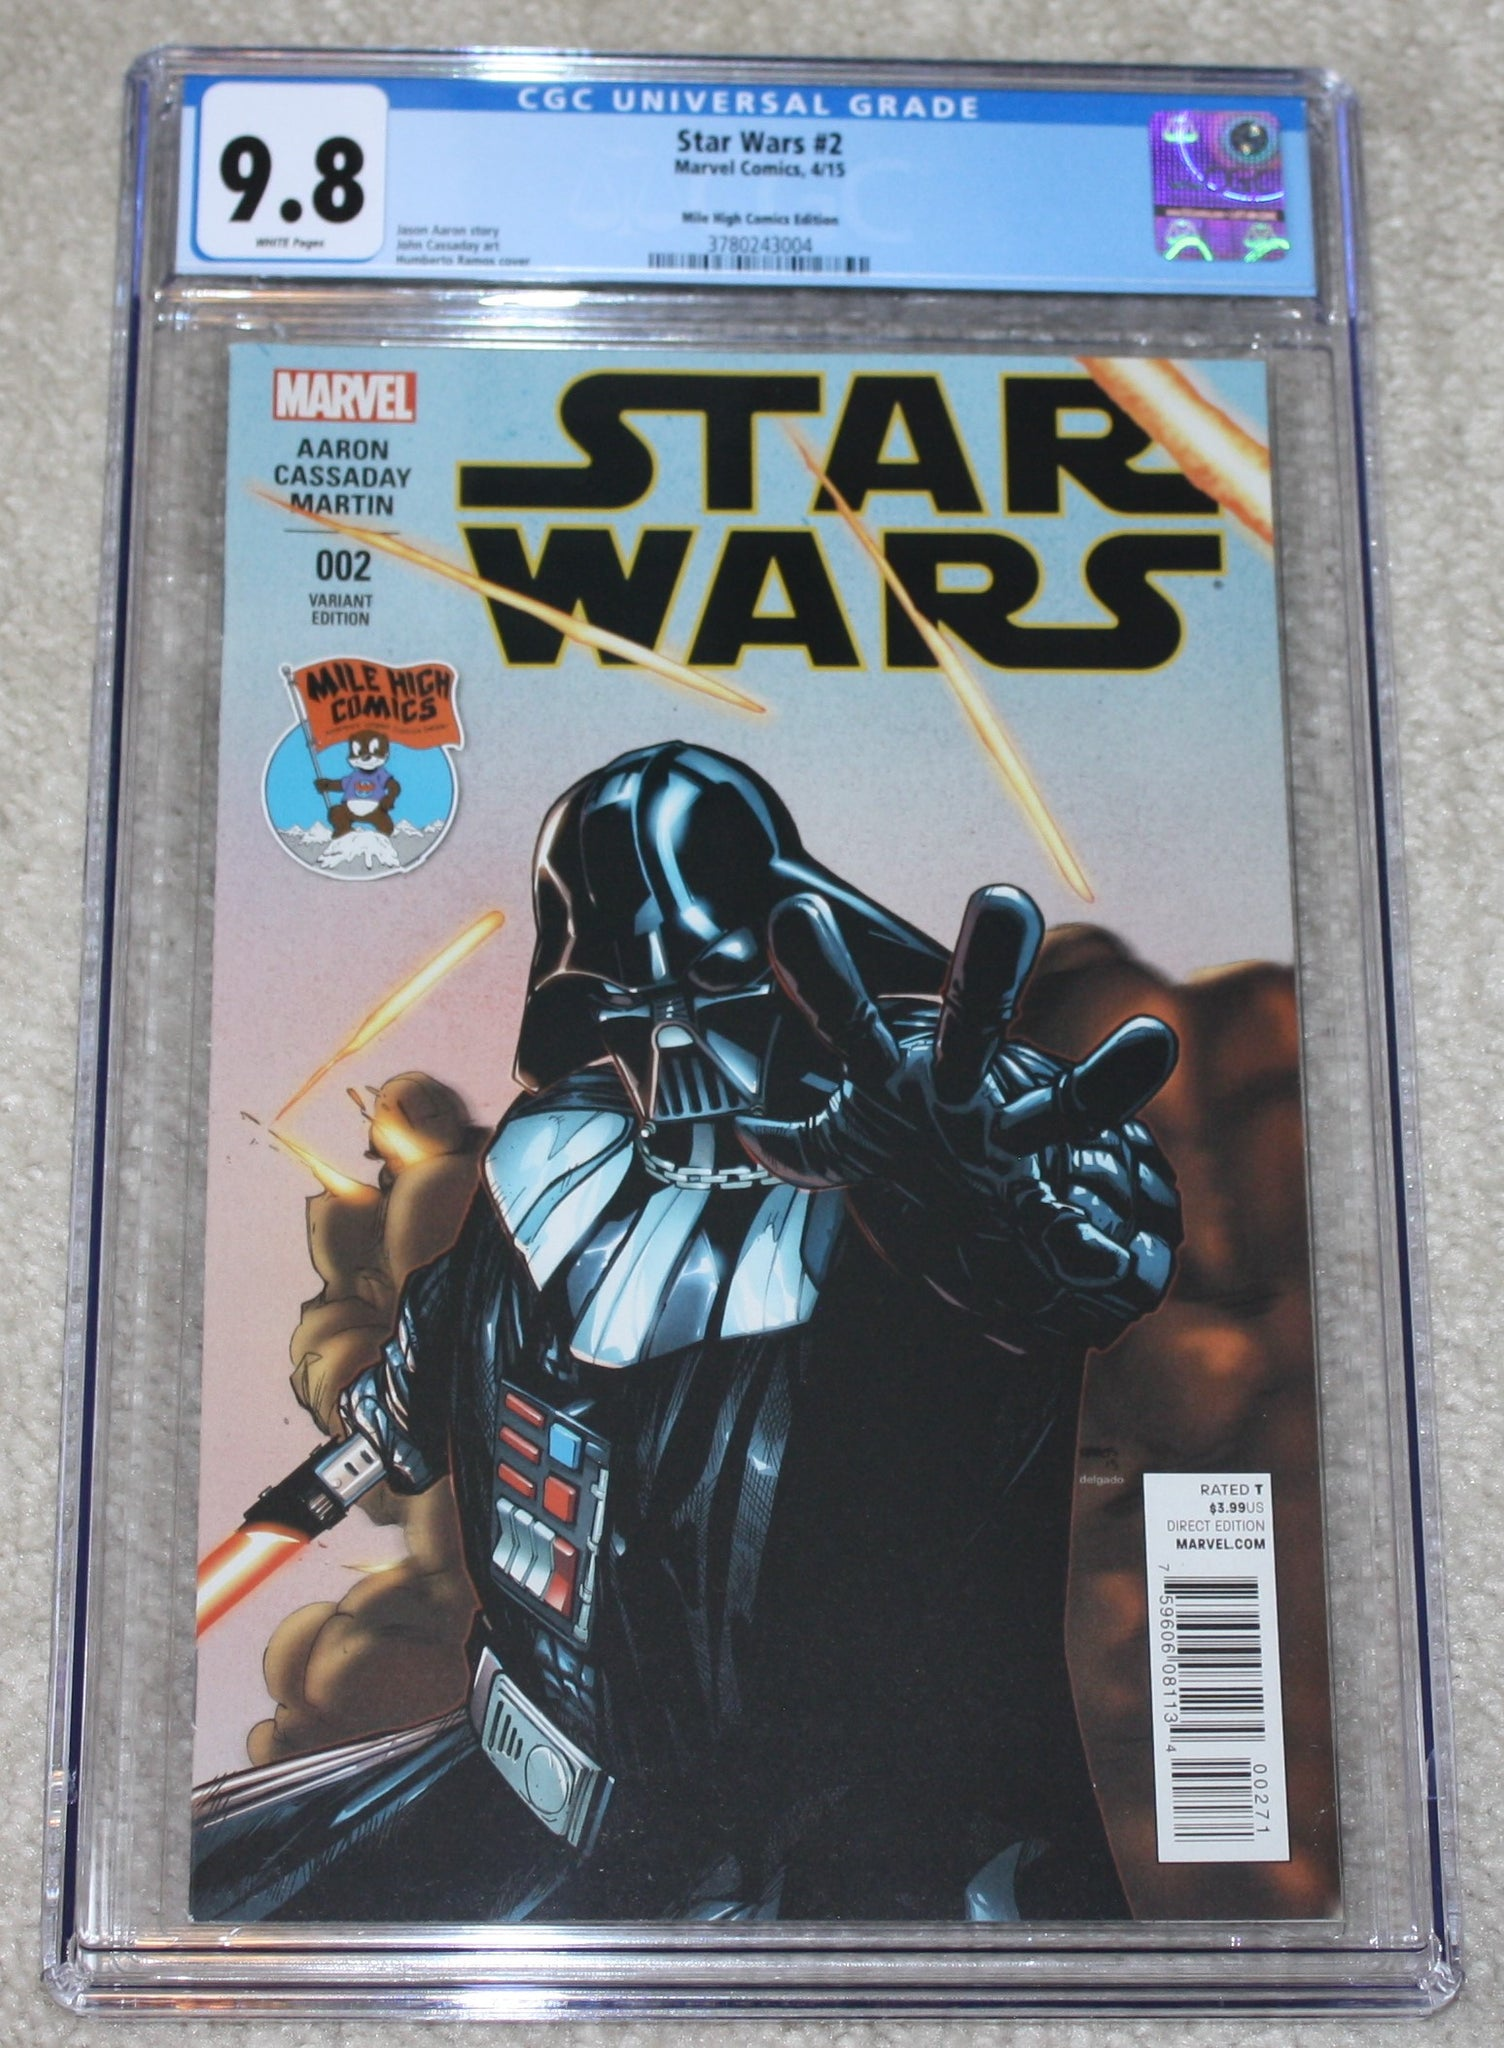 STAR WARS 2 CGC 9.8 HUMBERTO RAMOS DARTH VADER MILE HIGH CONNECTING VARIANT